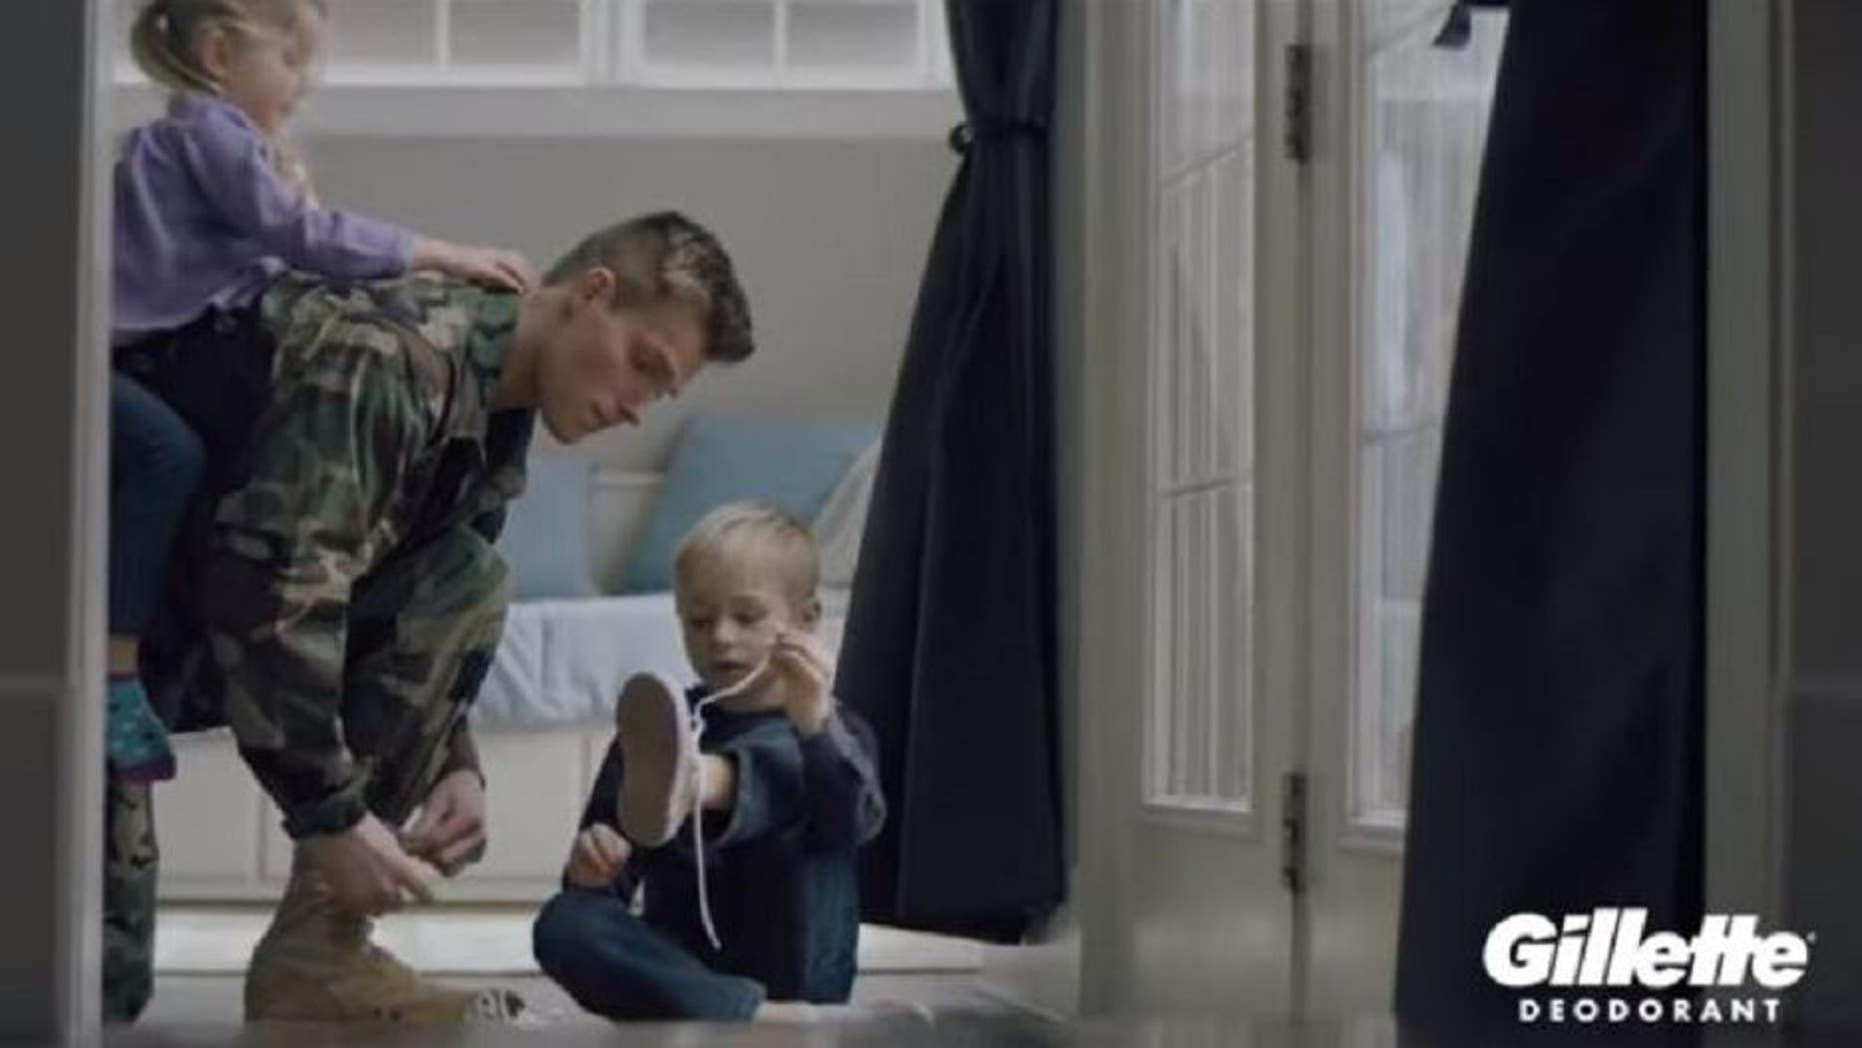 Gillette's new campaign focuses on military service members